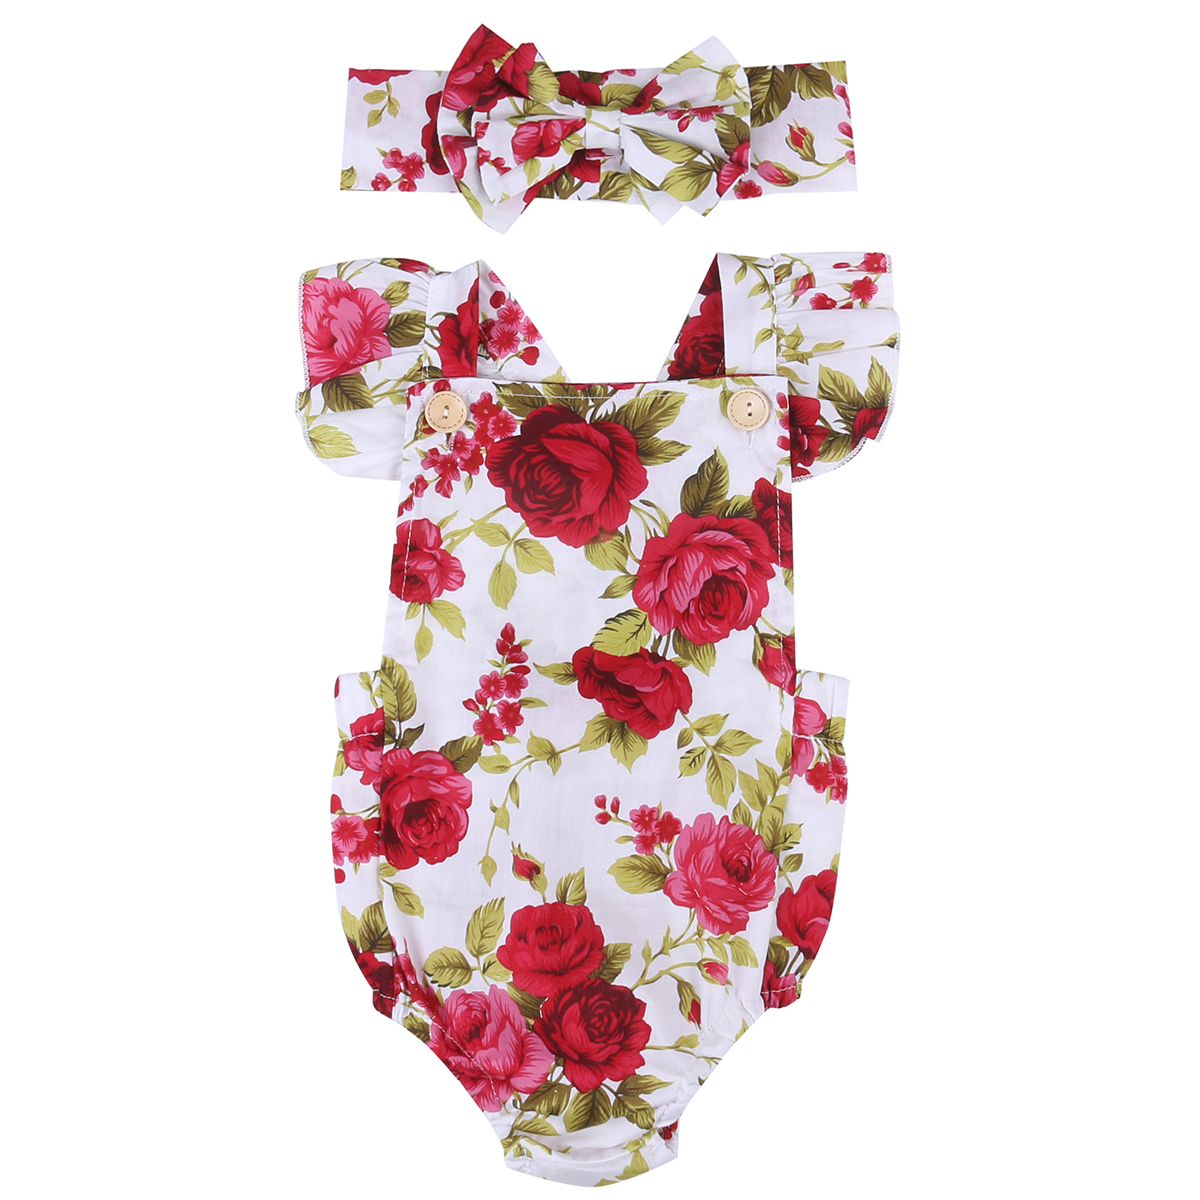 2017 Floral Baby Romper Newborn Baby Girl Clothes Ruffles Sleeve Bodysuit +Headband 2pcs Outfit Bebek Giyim Sunsuit 0-24M 2017 newborn baby boy girl clothes floral infant bebes romper bodysuit and bloomers bottom 2pcs outfit bebek giyim clothing